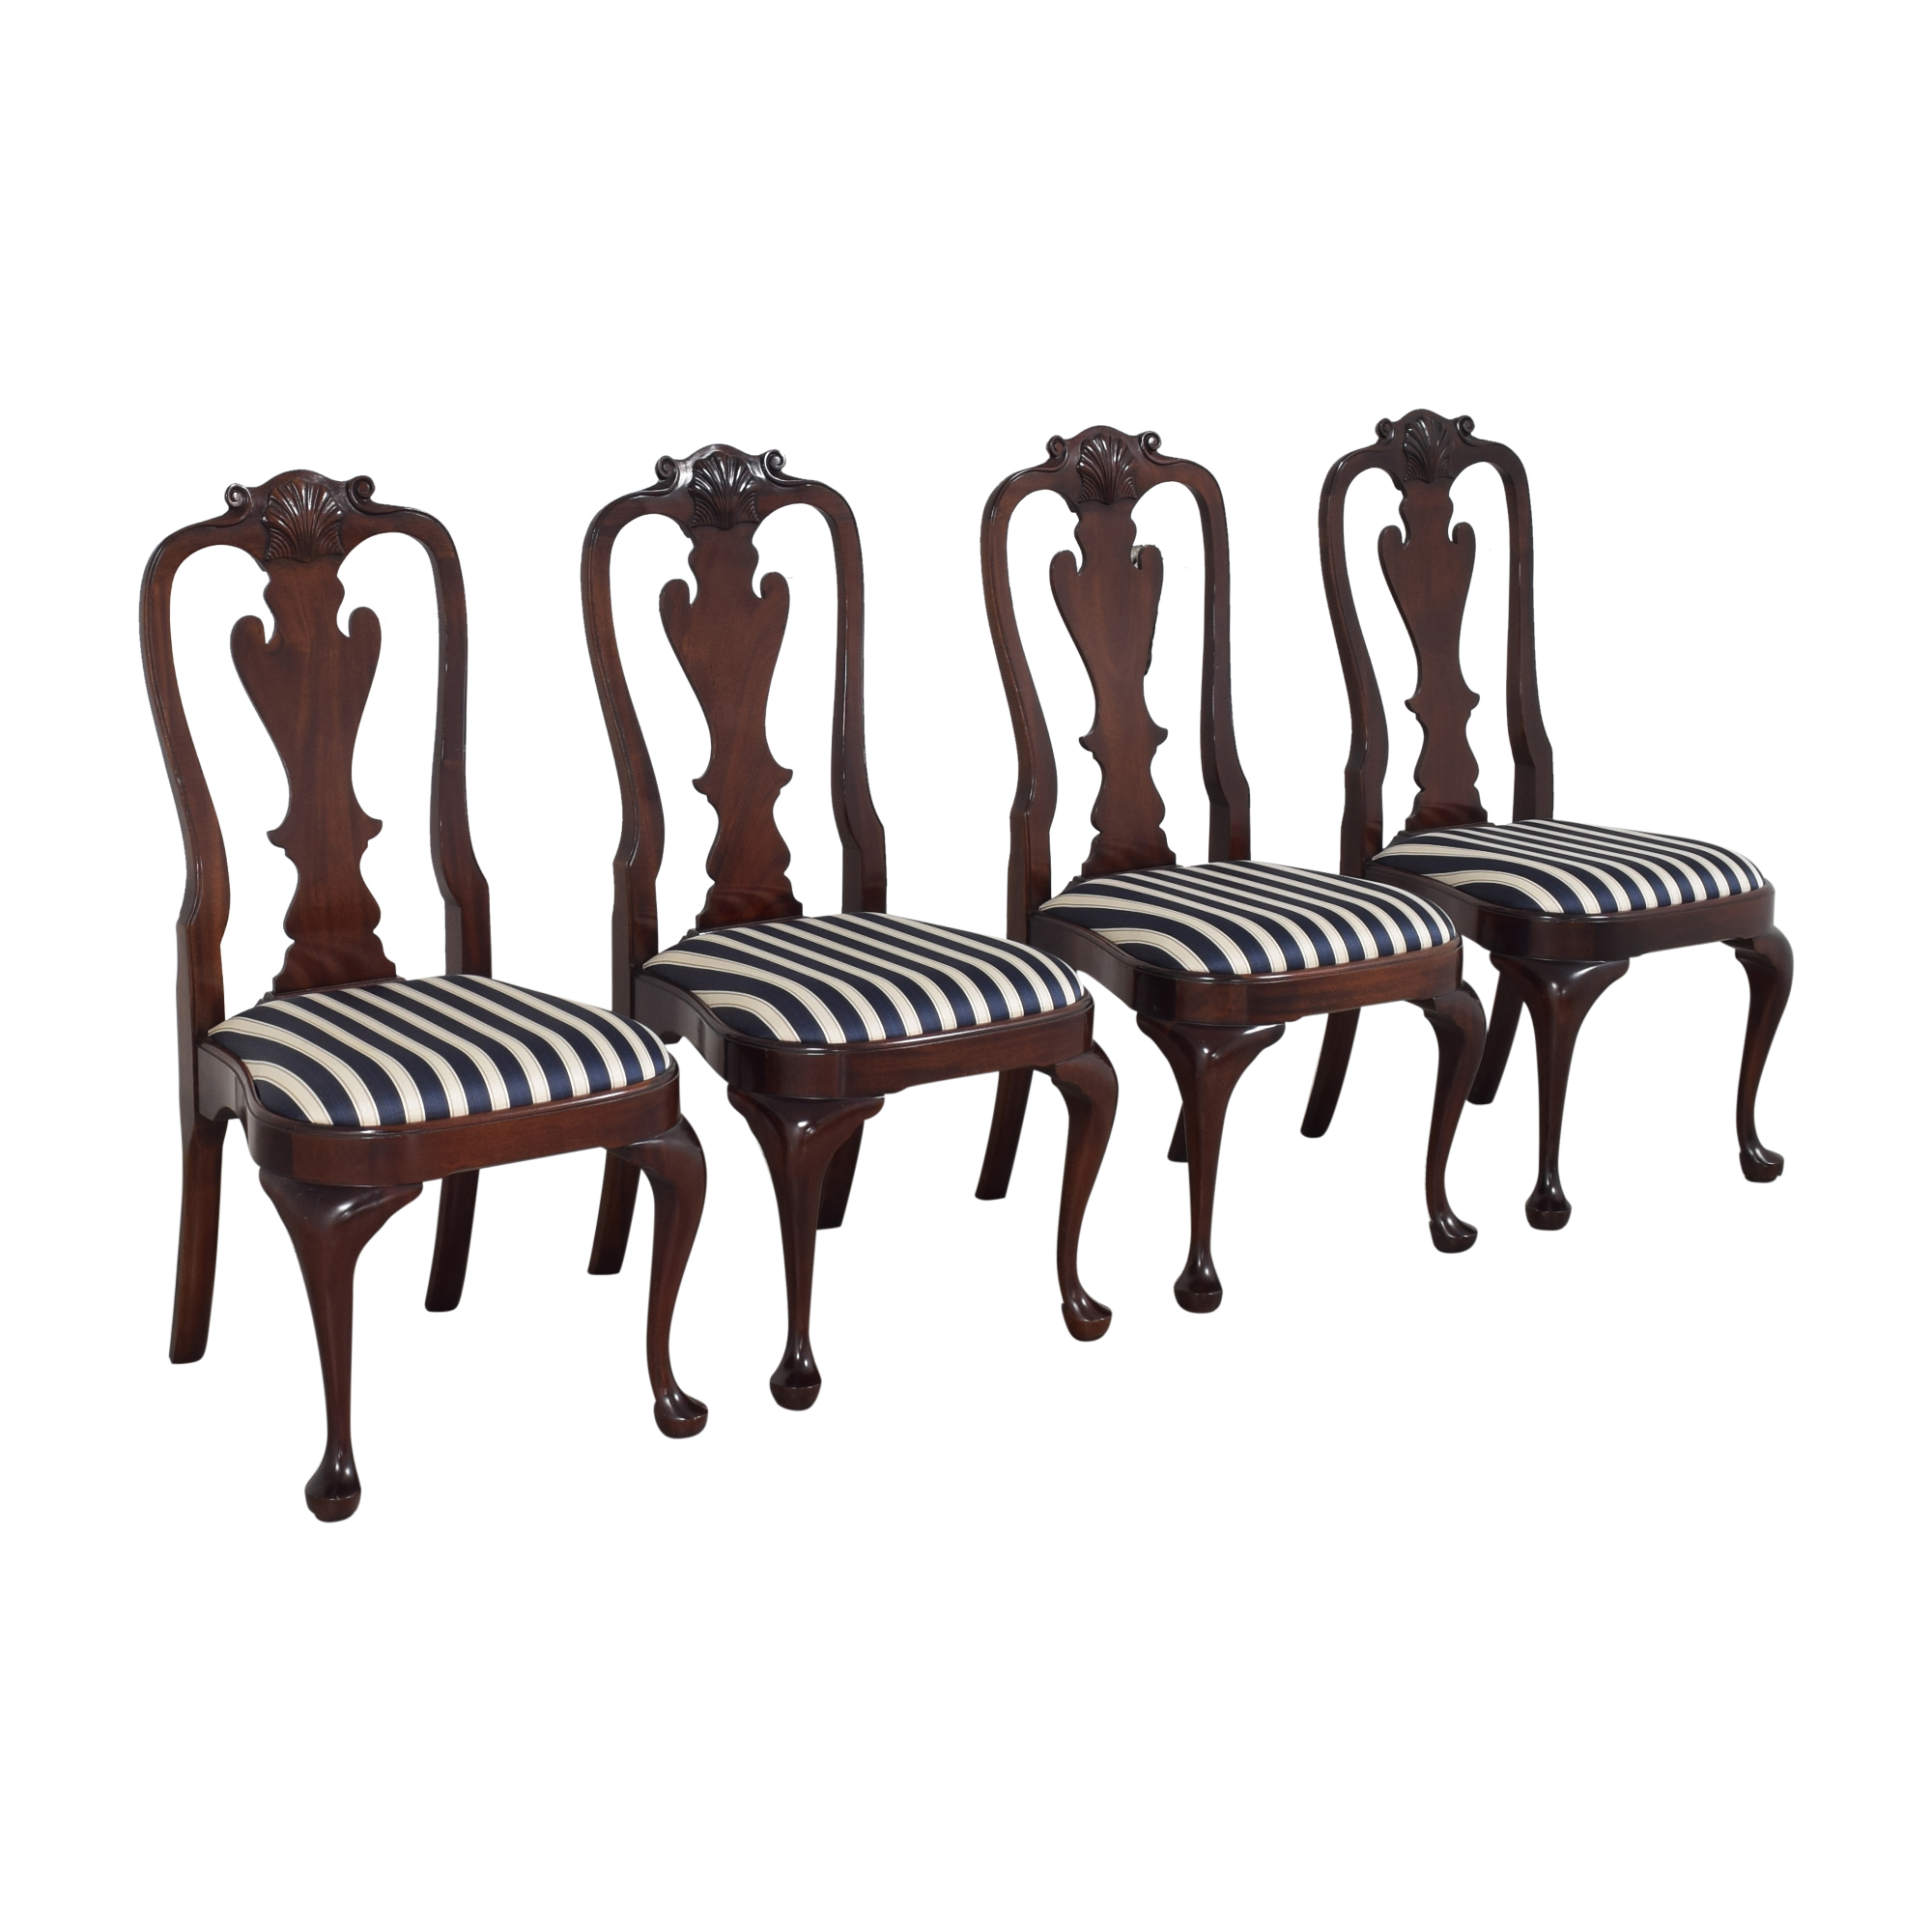 buy Stickley Furniture Stickley Furniture Queen Anne-Style Dining Chairs online